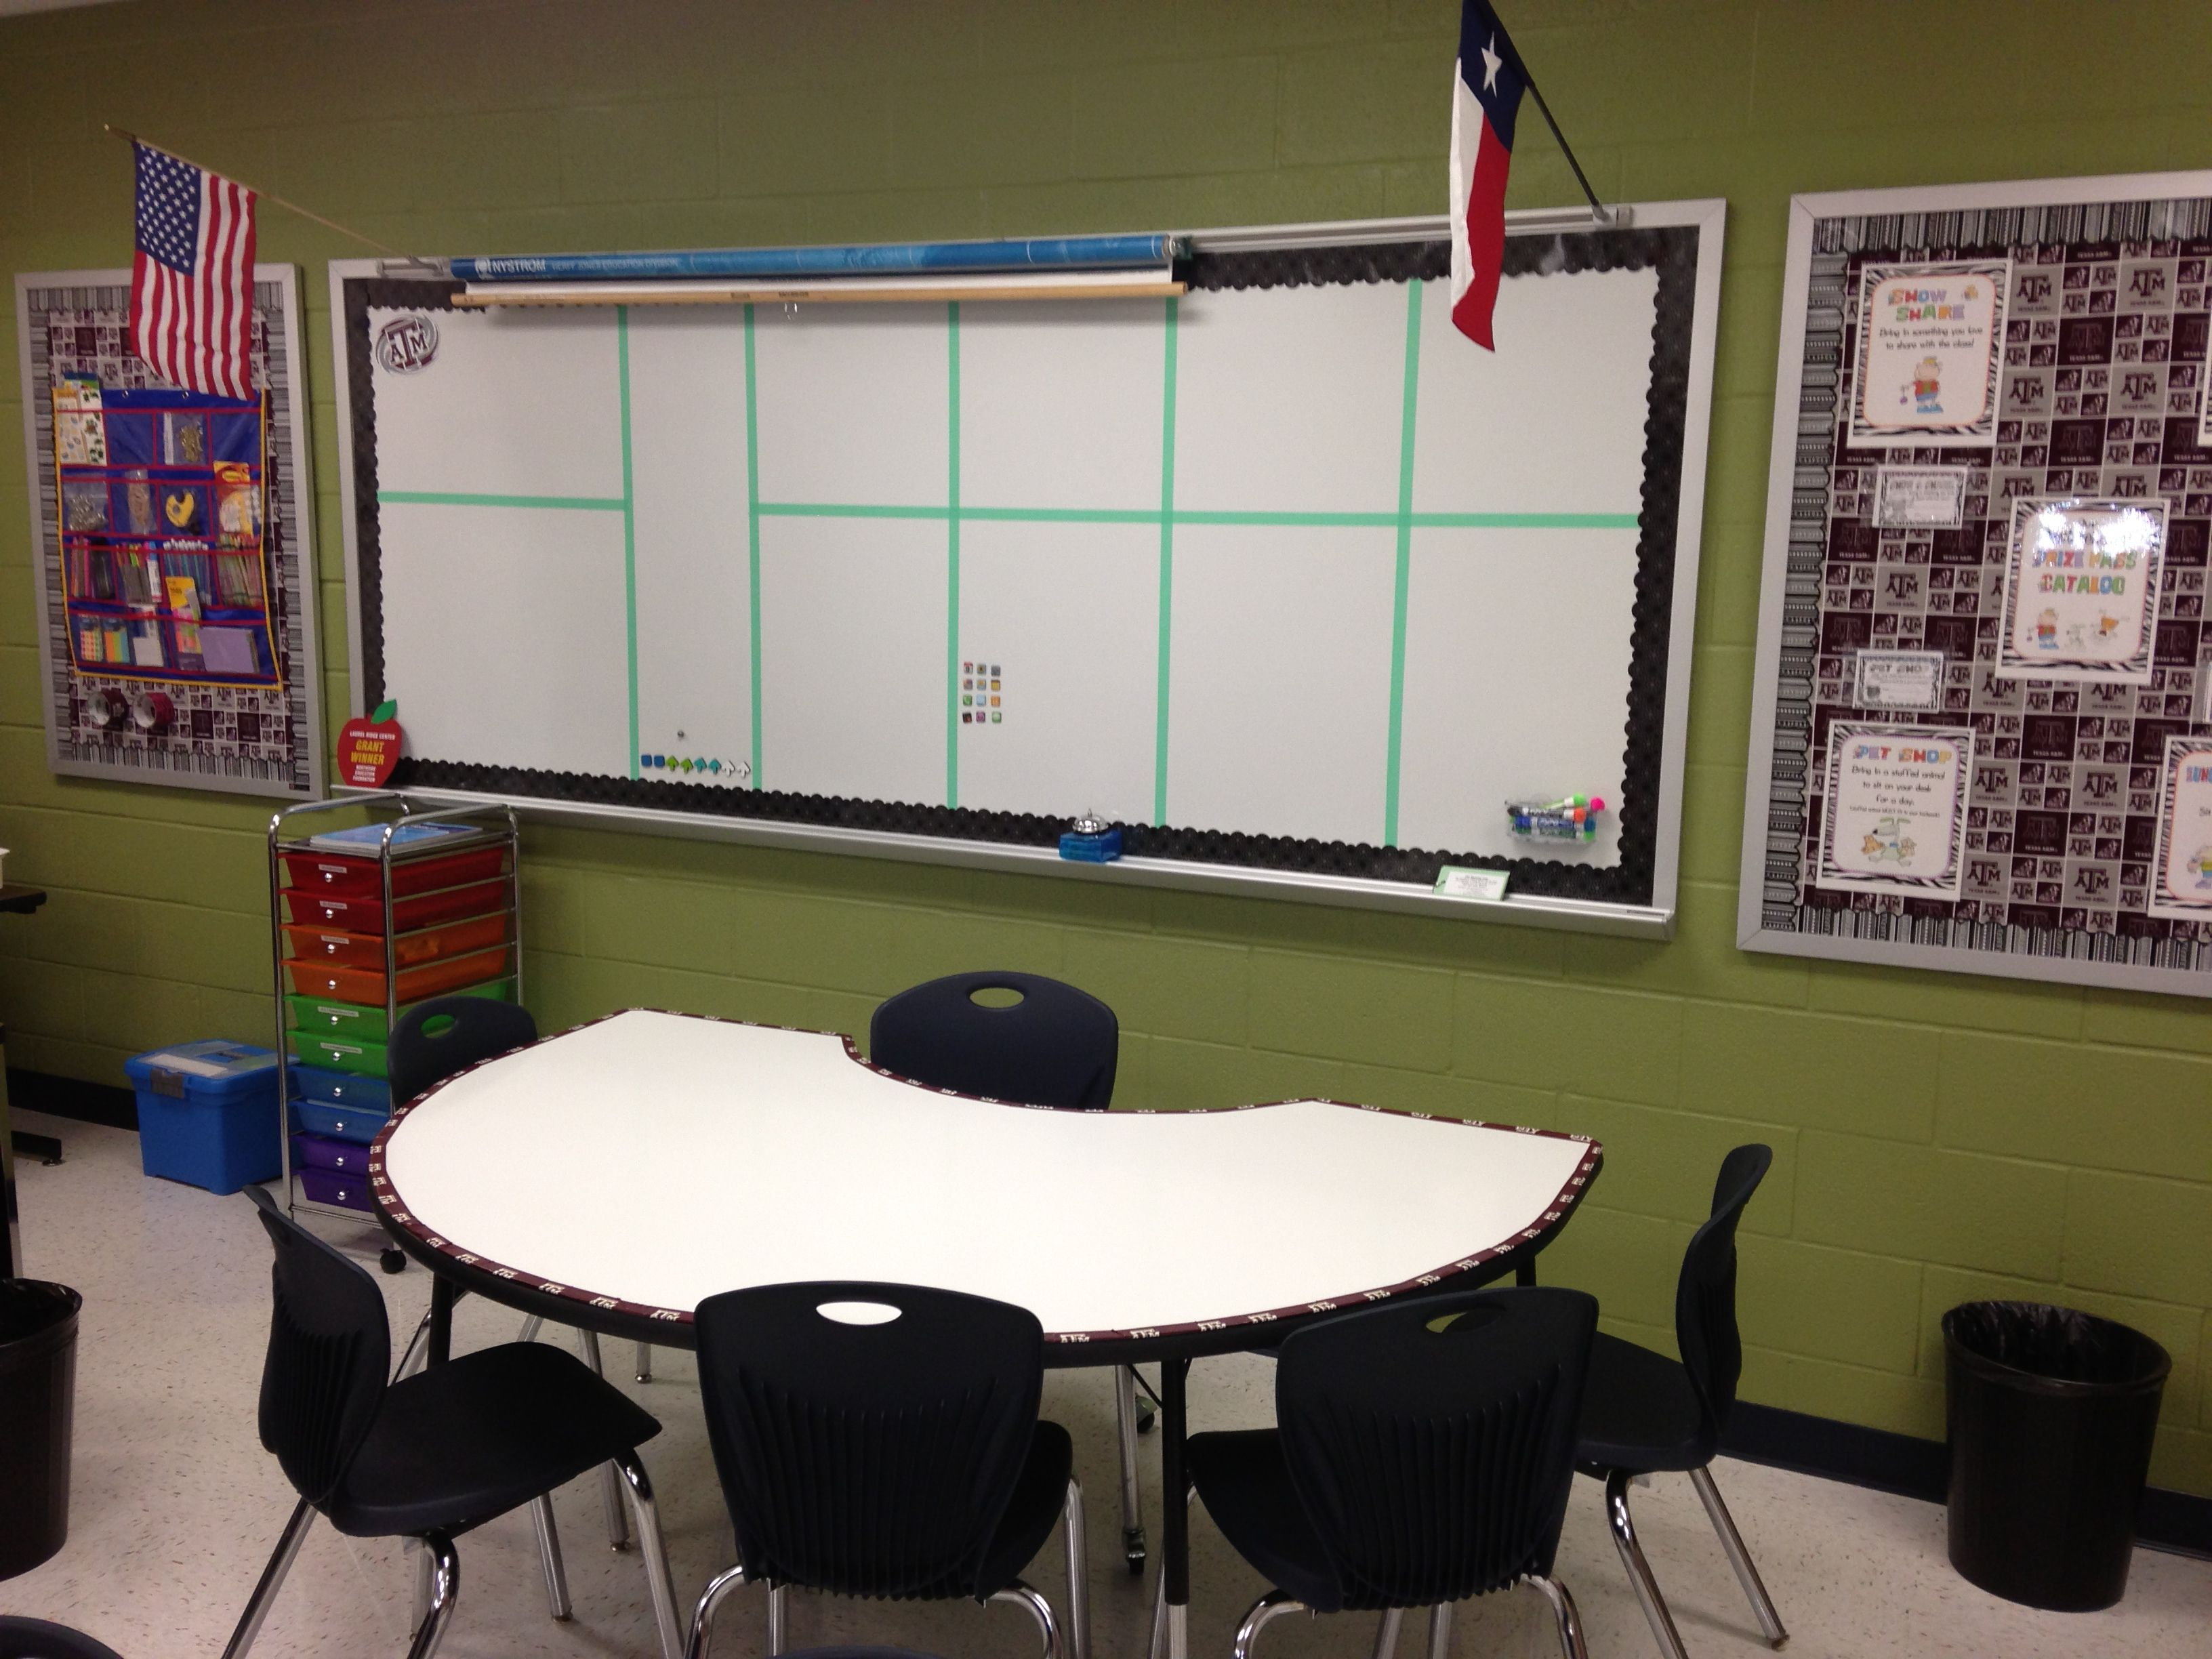 Kidney table turned into a whiteboard table great for small